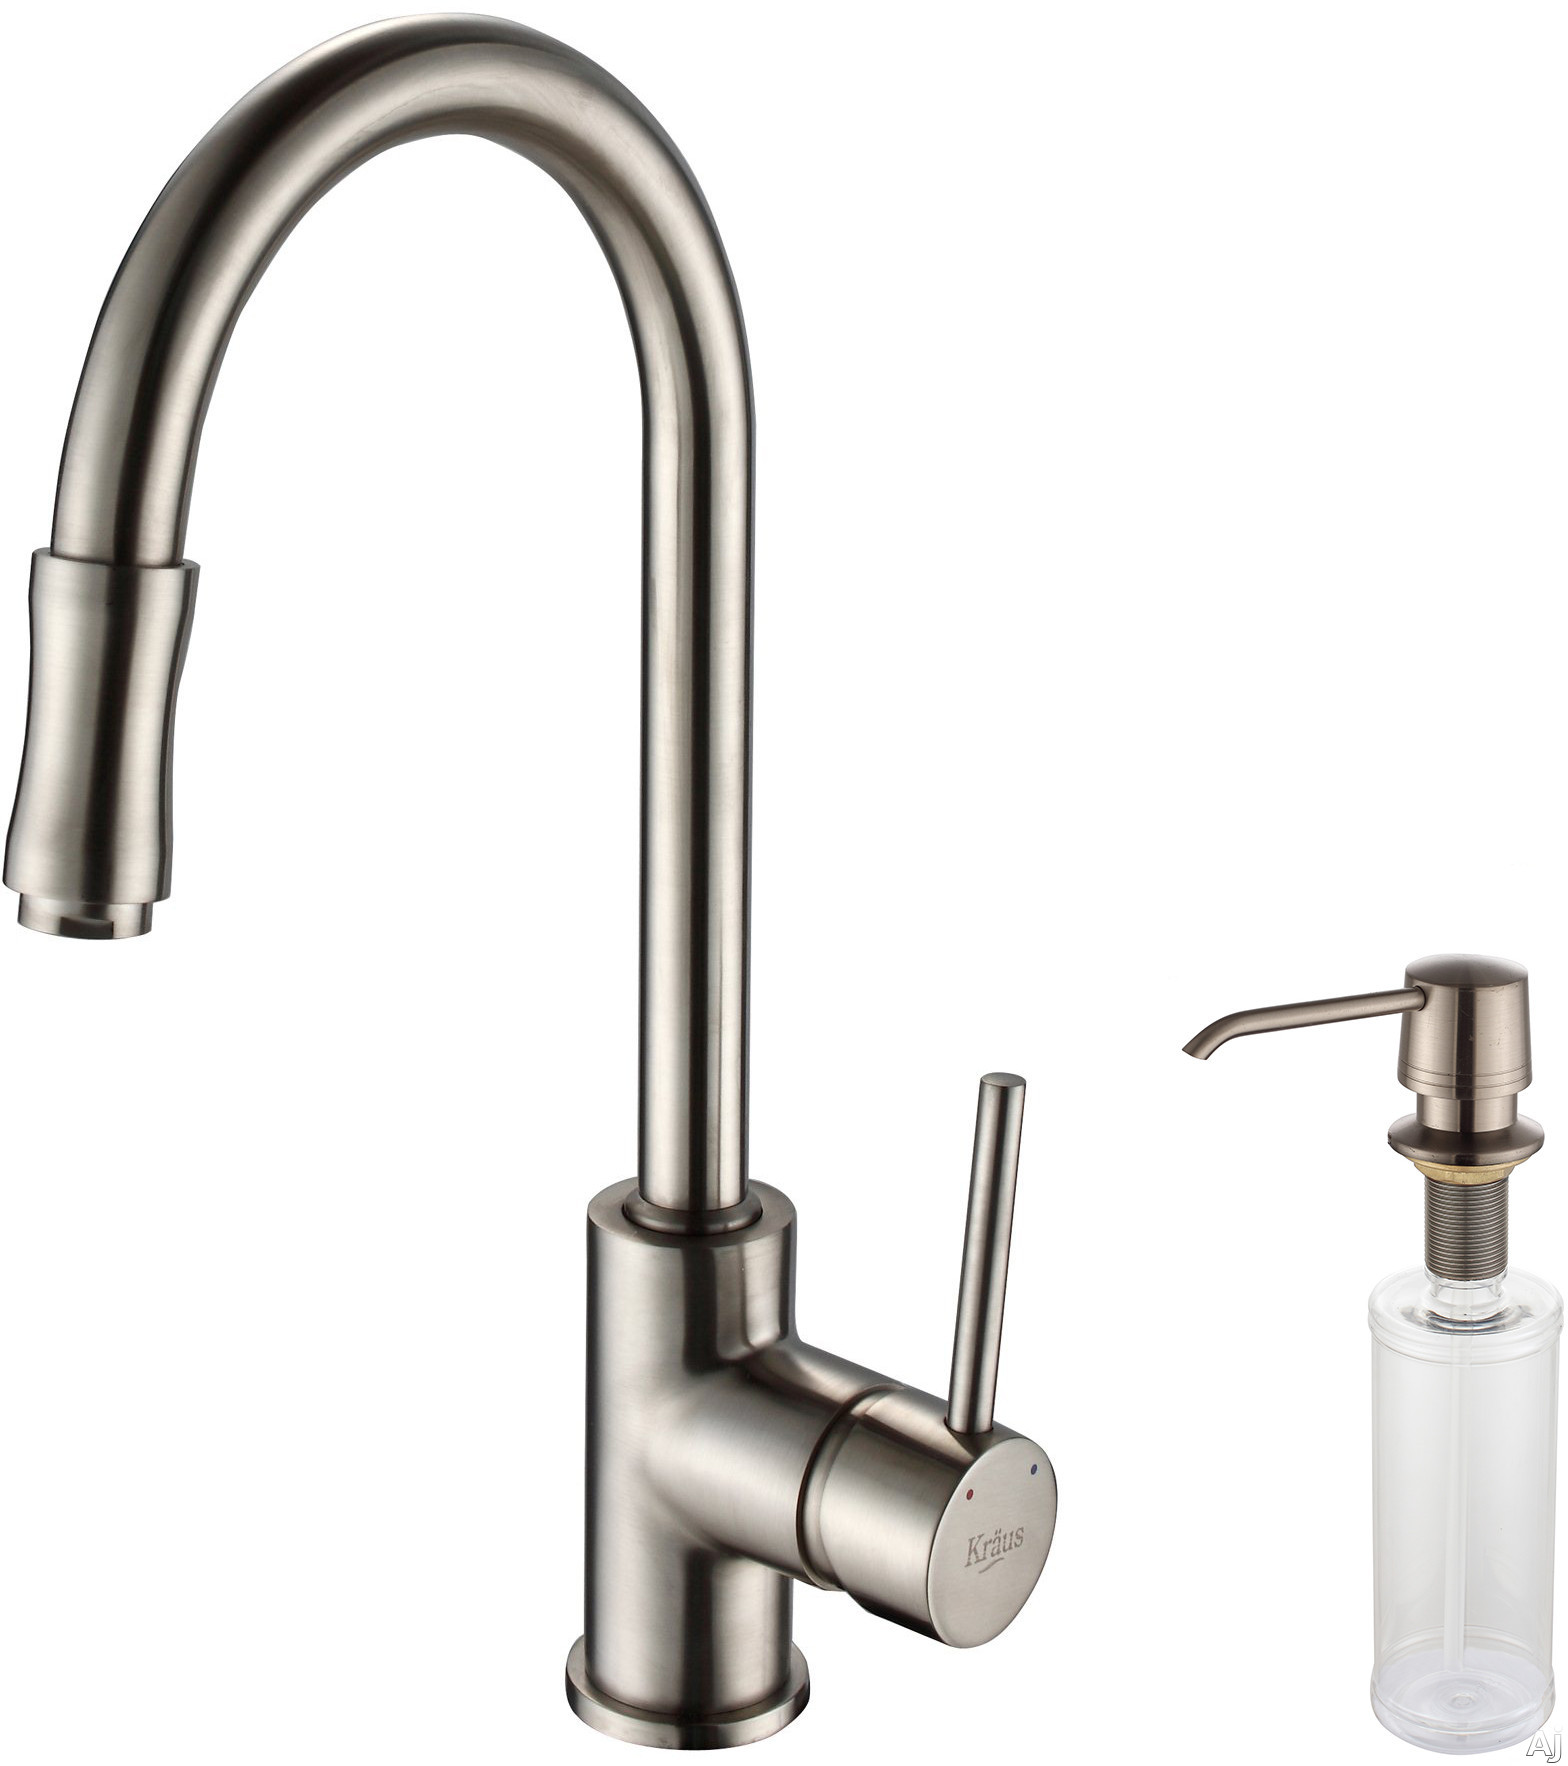 Kraus Kpf1622ksd30sn Single Lever Pull Out Kitchen Faucet With Hi Arc Pull Down Spray Head 2 2